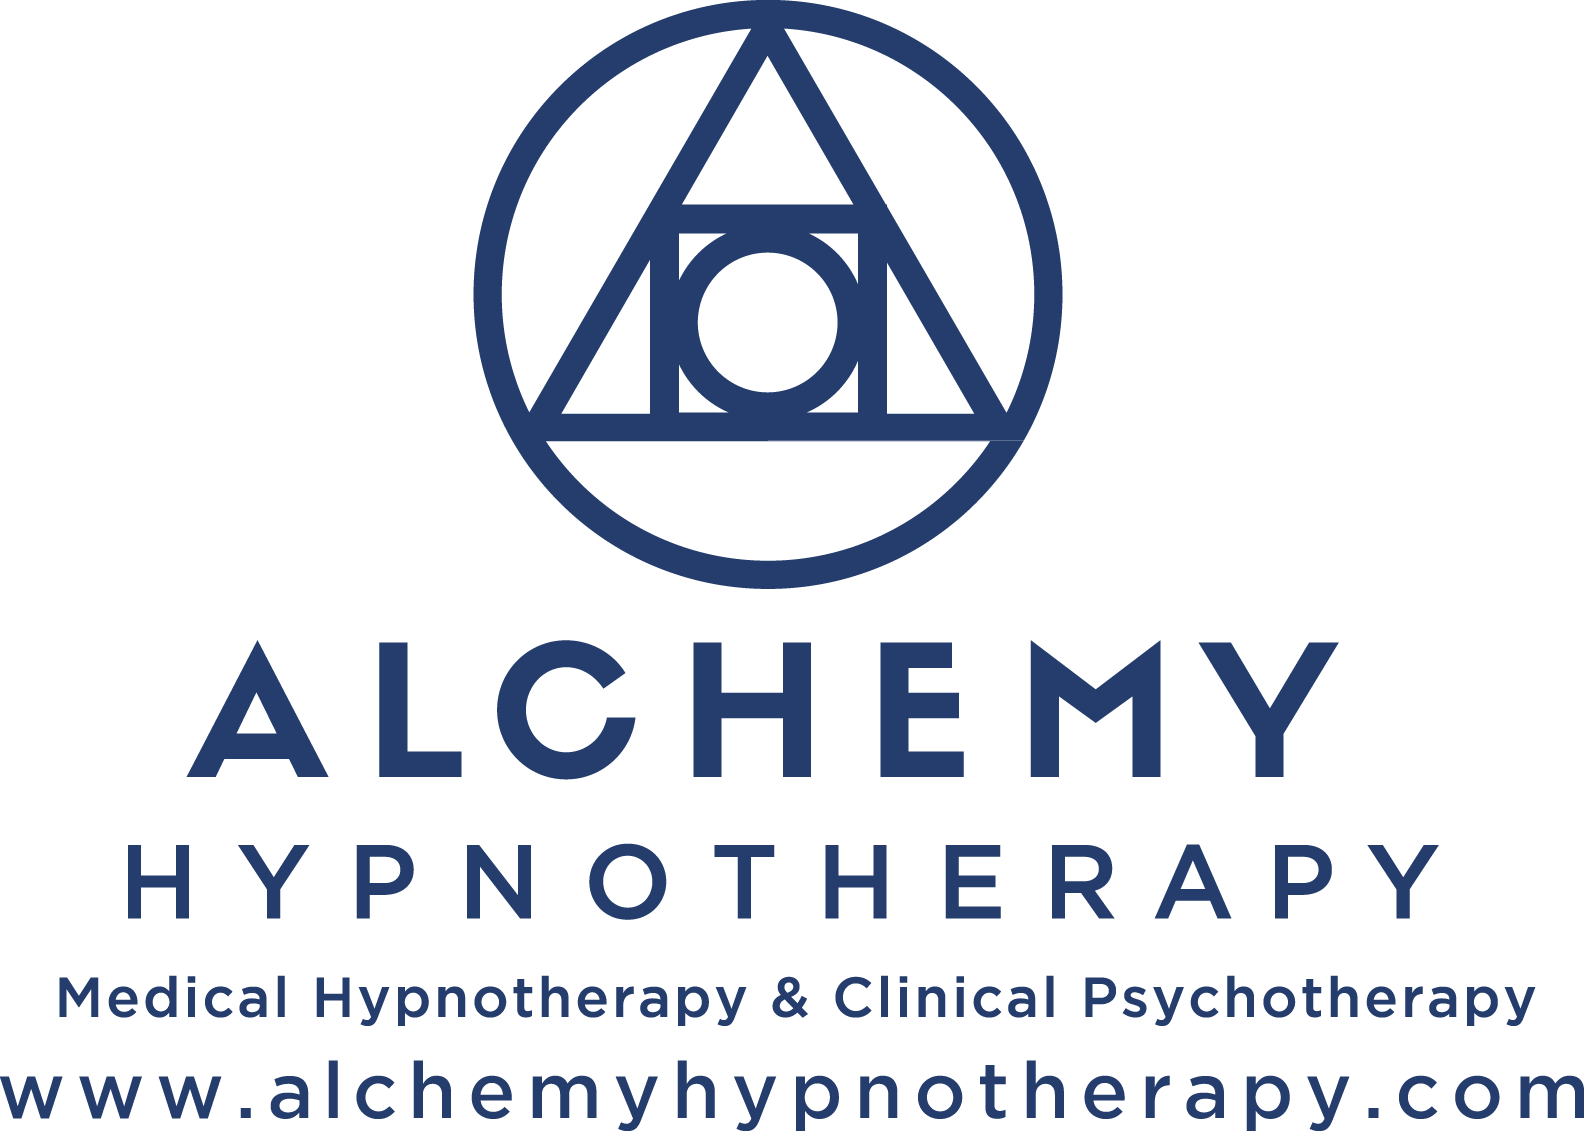 This is the Alchemy Hypnotherapy Logo with the words Medical Hypnotherapy & Clinical Psychotherapy and www.alchemyhypnotherapy.com